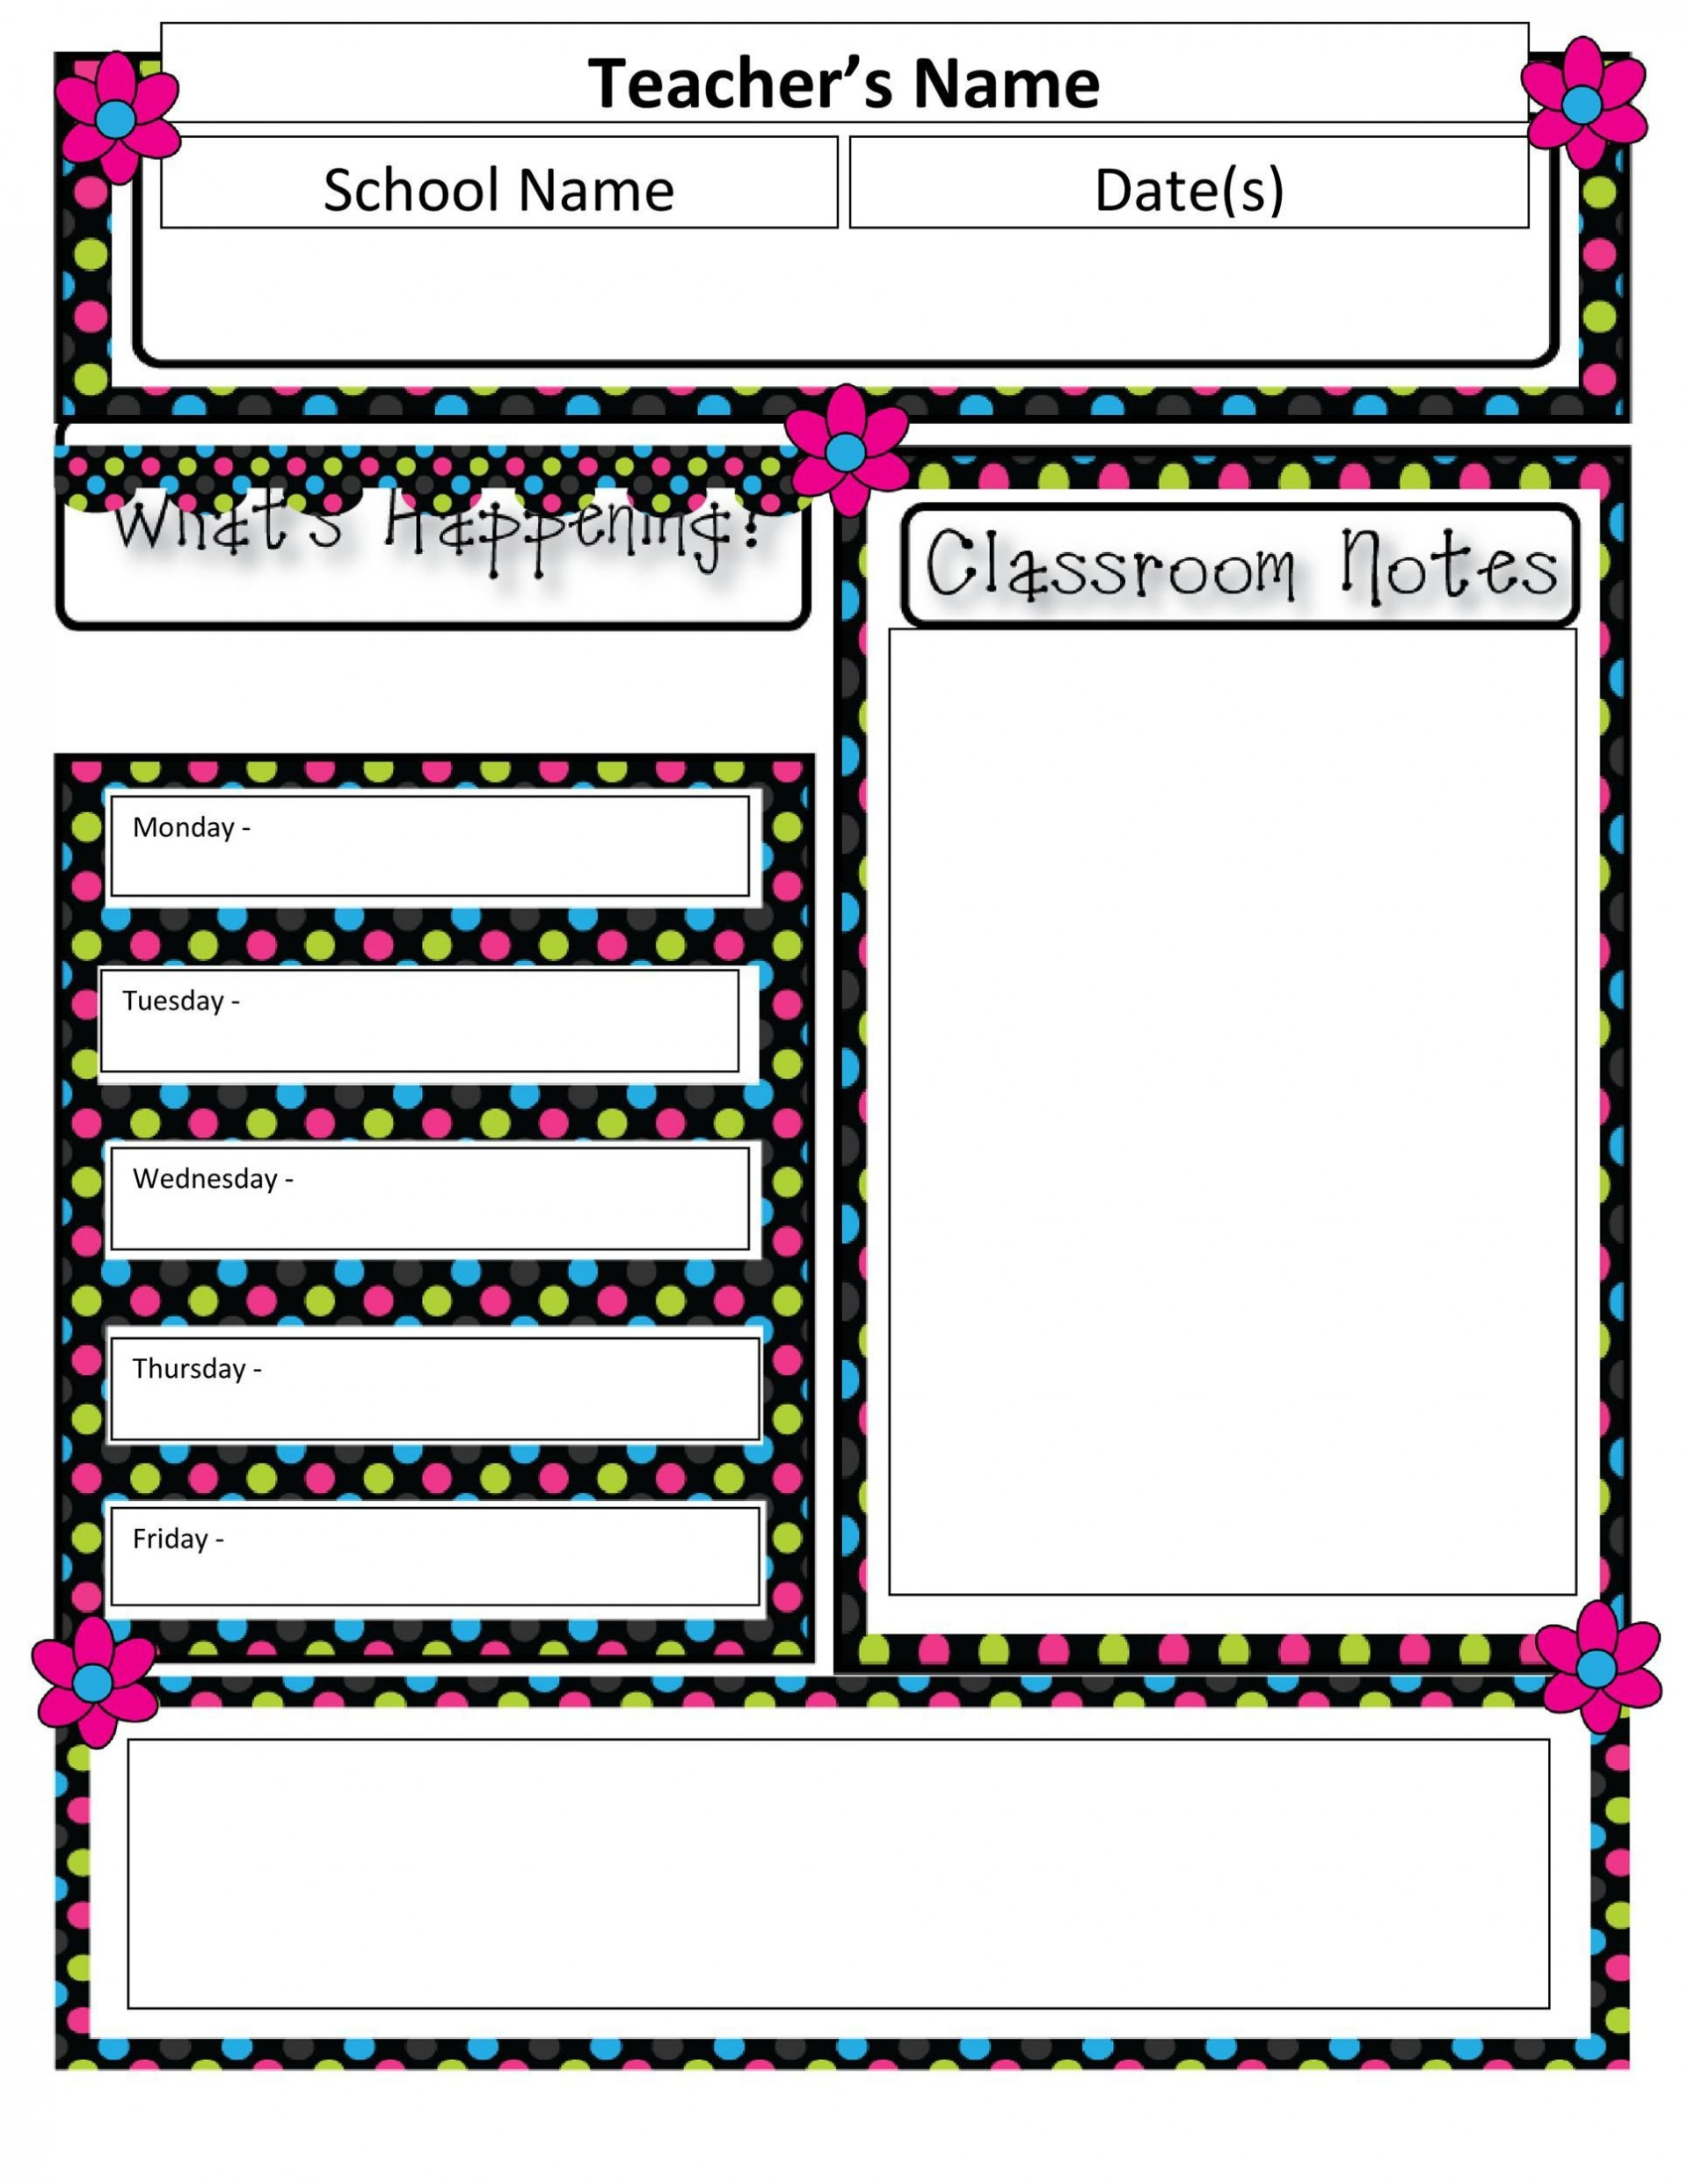 008 Unique Free Teacher Newsletter Template Image  Classroom For Microsoft Word Google Doc1920